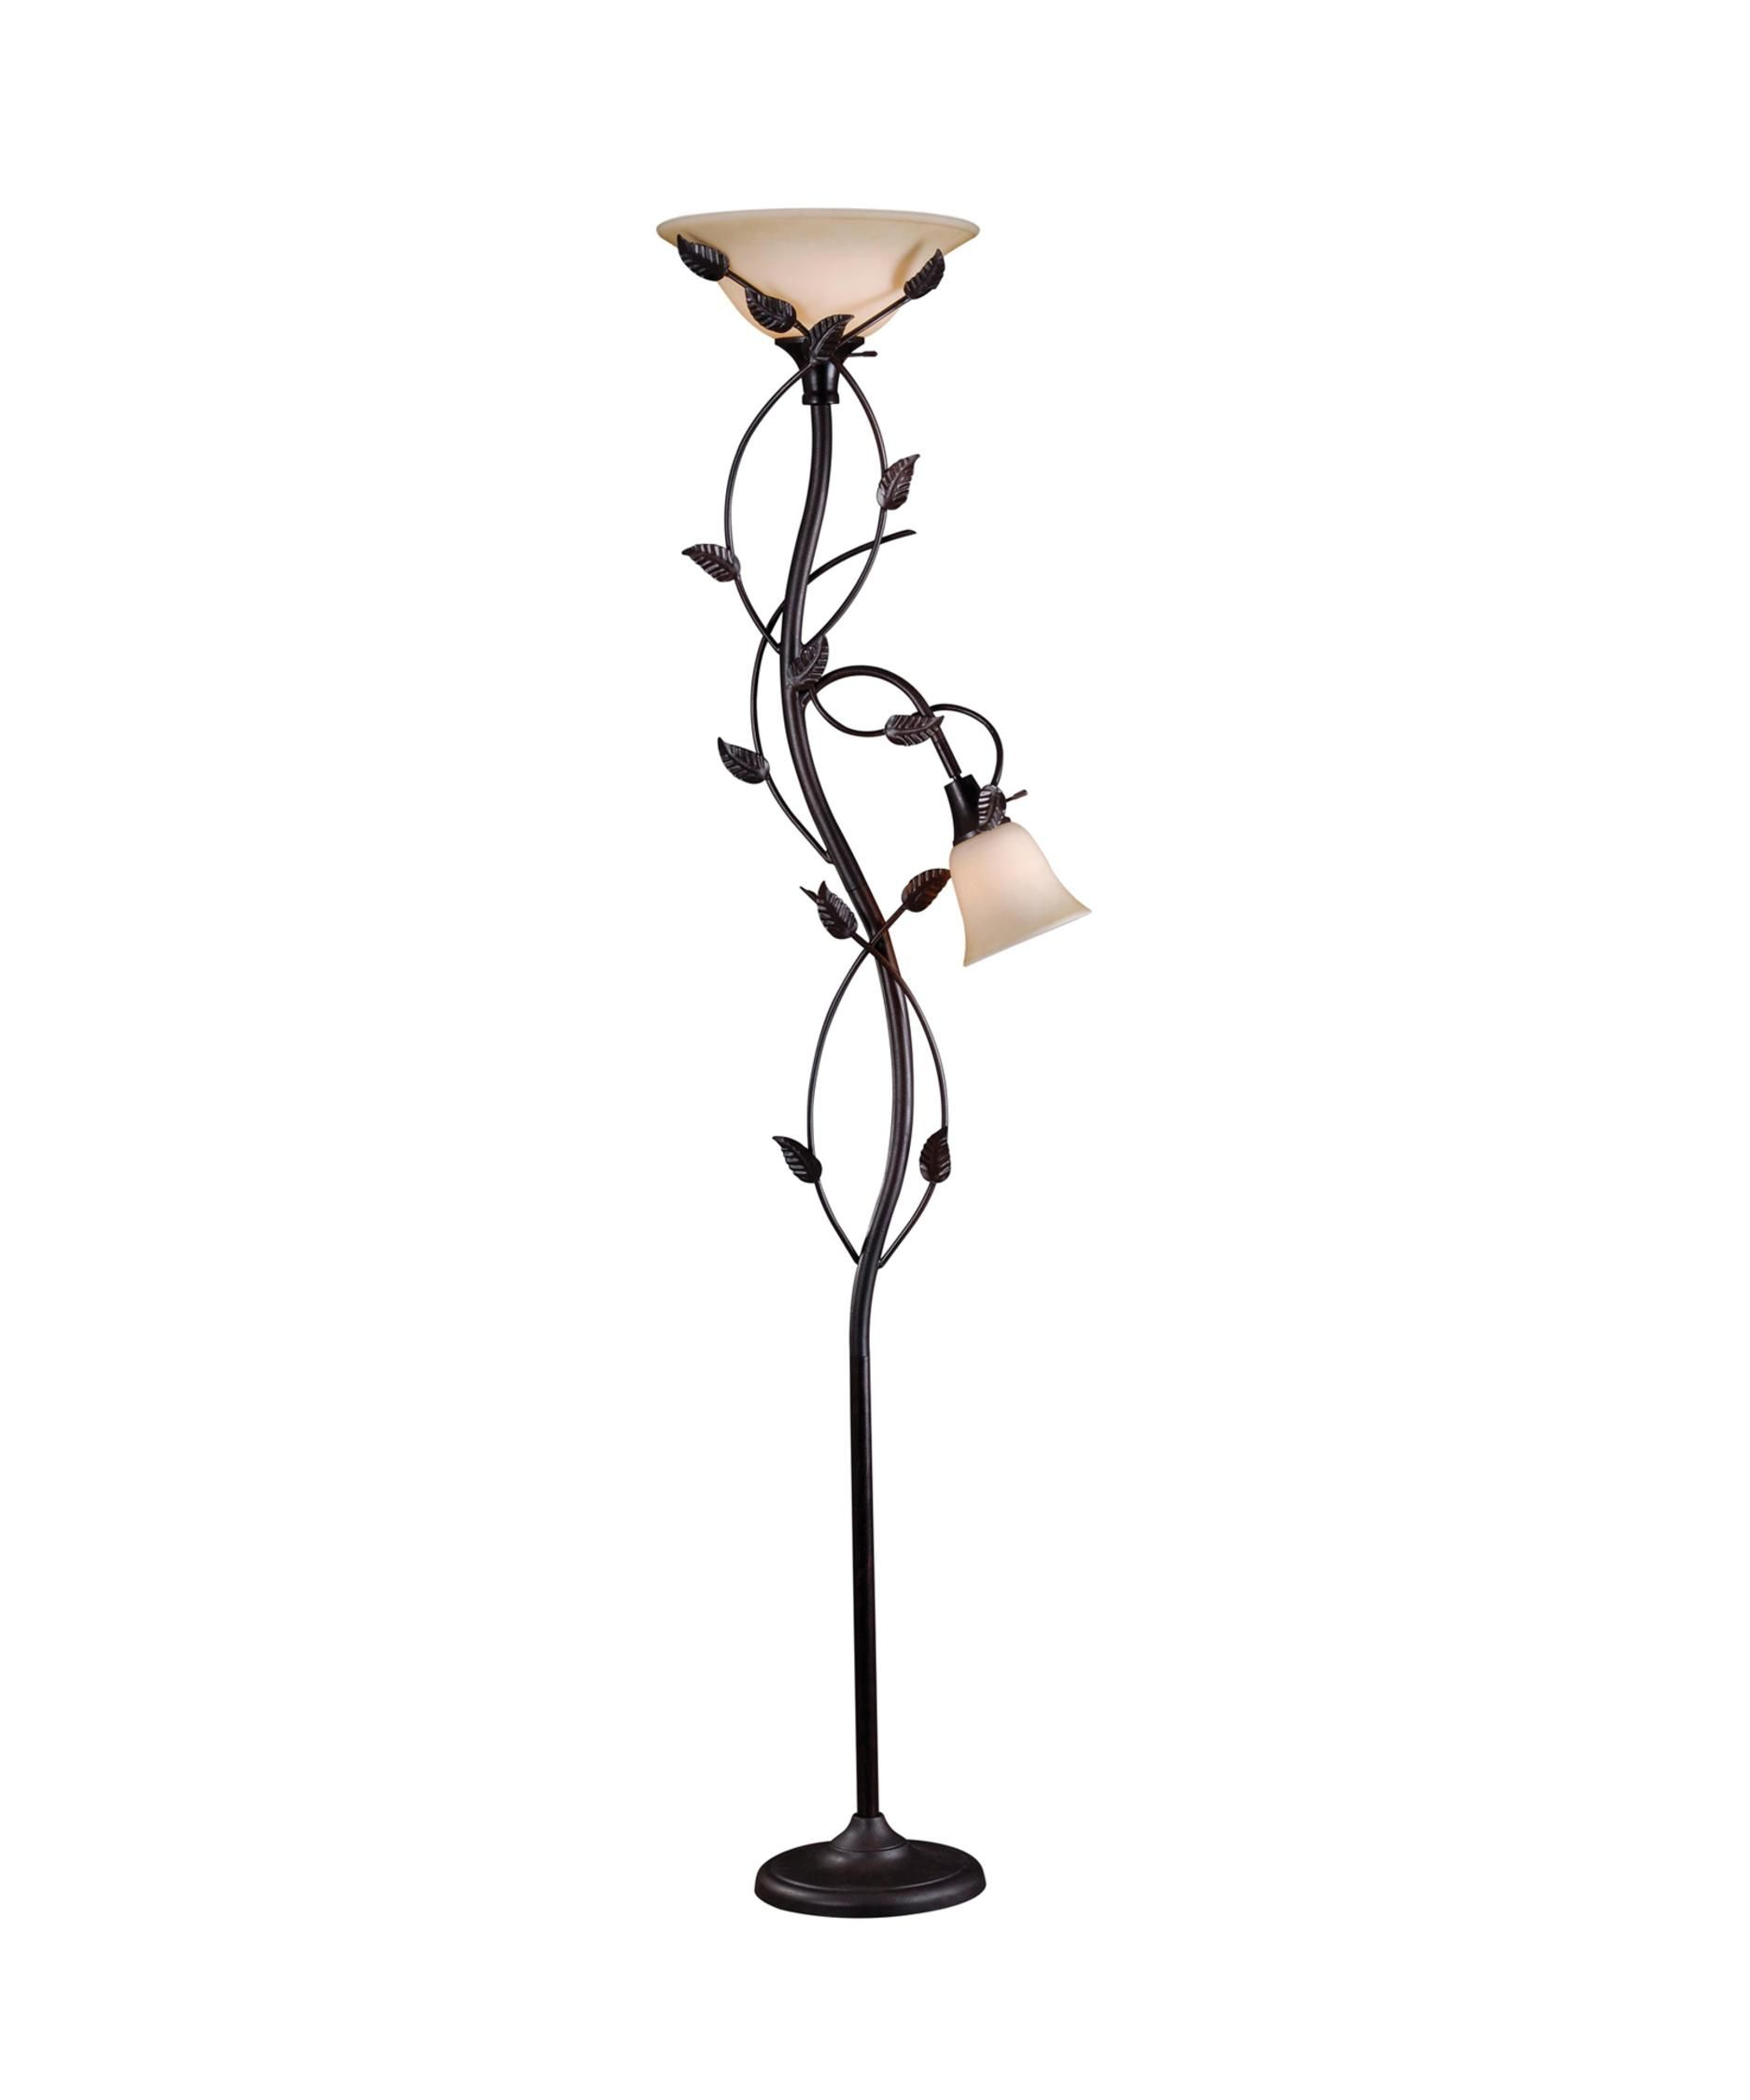 Ashlen 72 Inch Torchiere Lamp by Kenroy Home Floor lamp